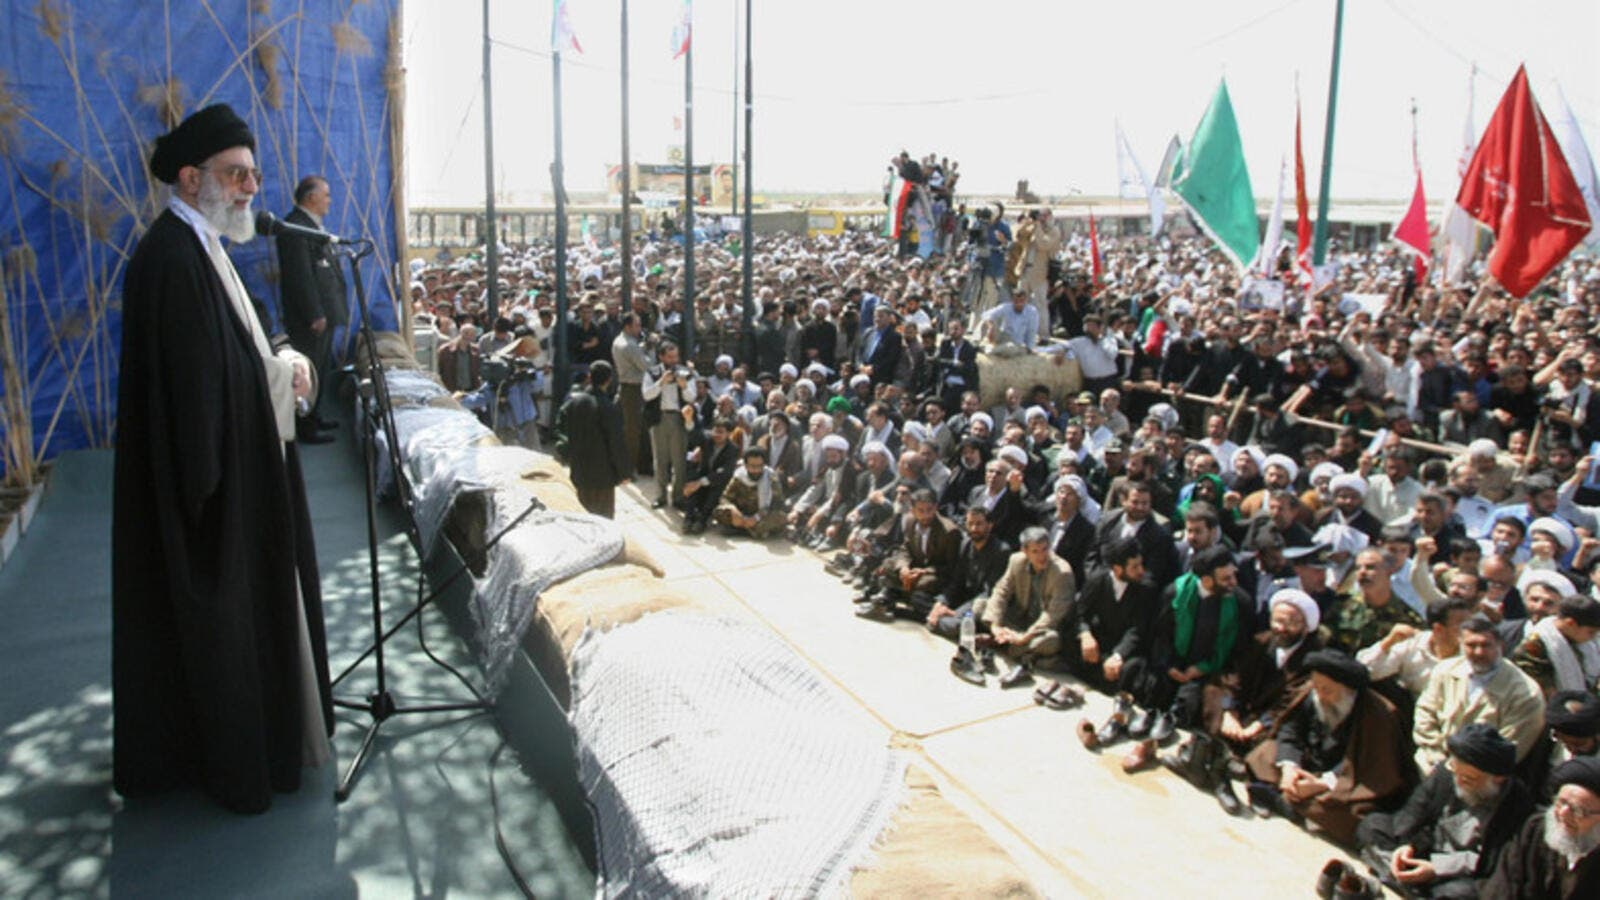 Ayatollah Ali Khamenei speaks to Ahwazi Arabs during a visit to Dehlavieh in the province of Khuzestan, on 25 March 2006. (AFP)